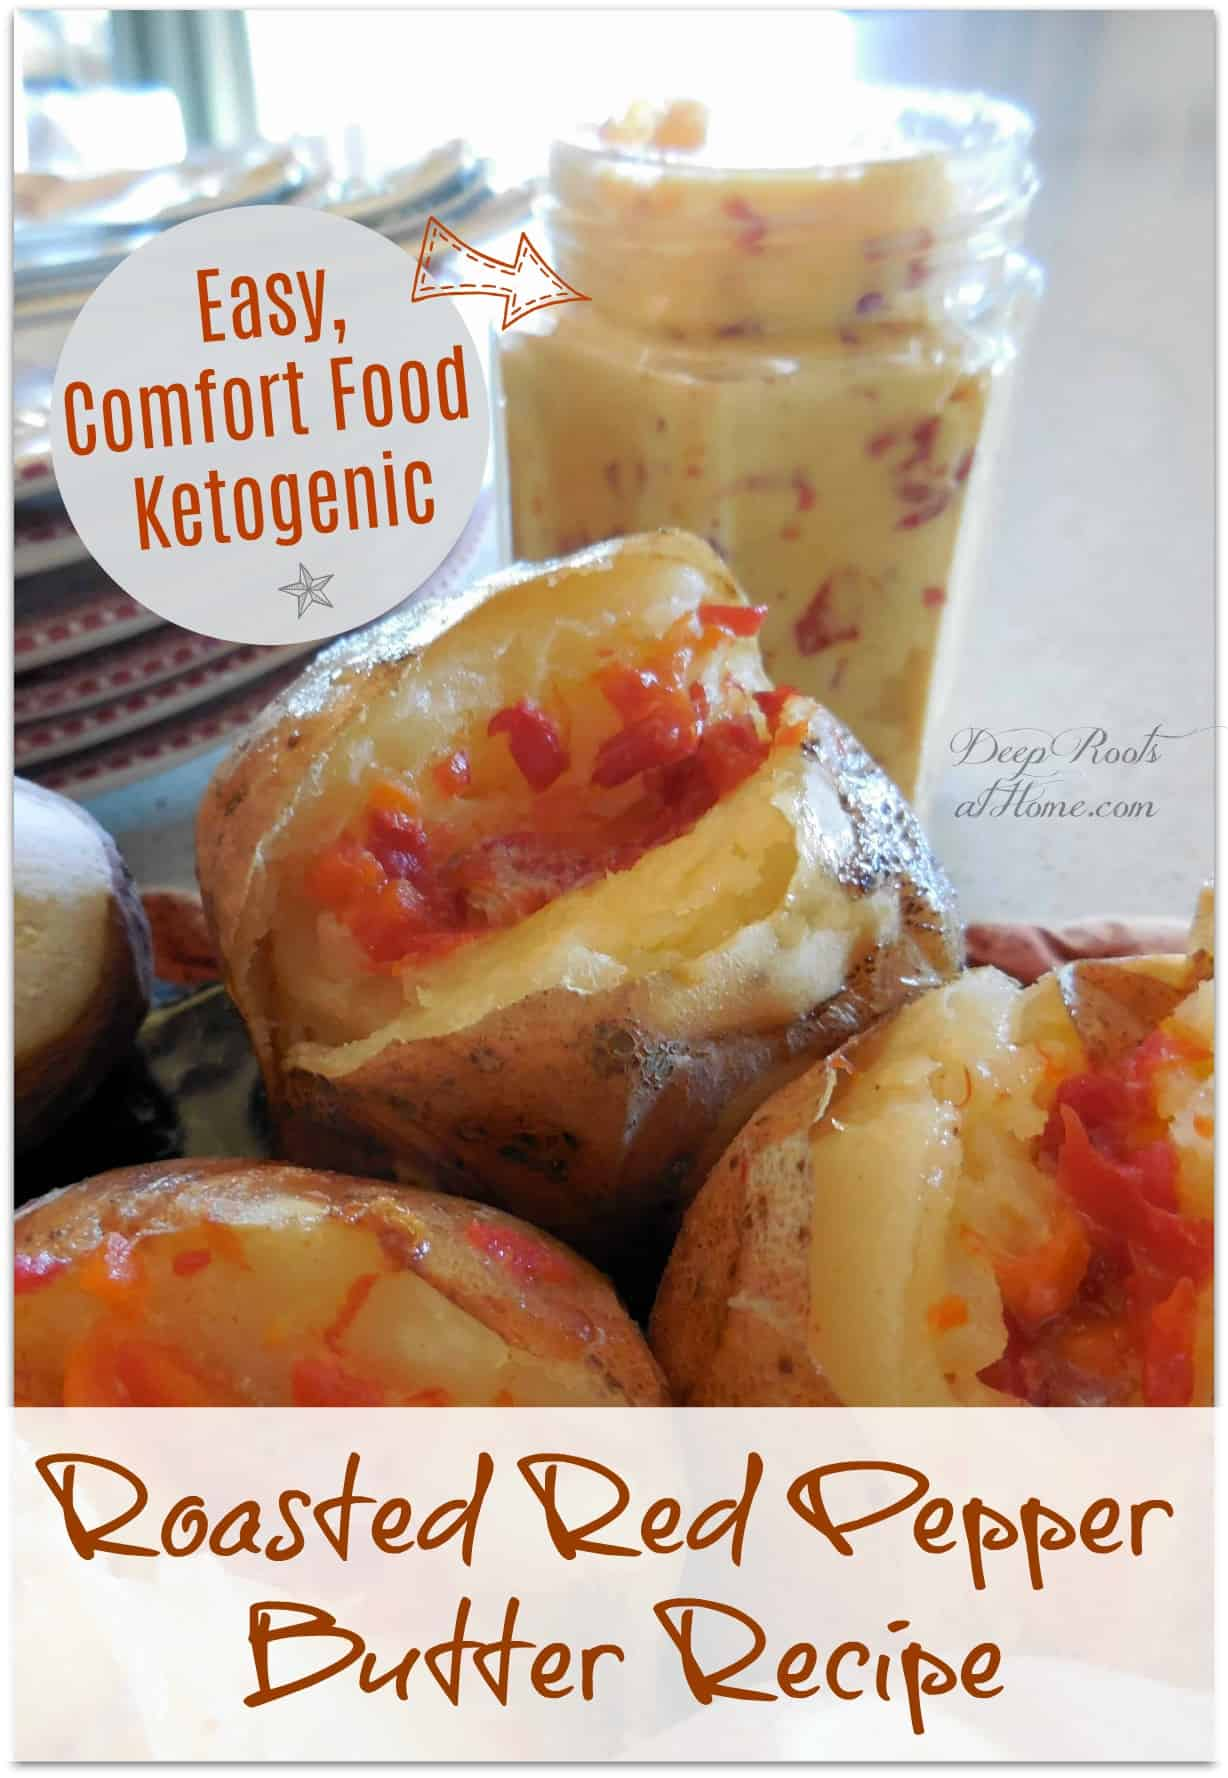 Roasted Red Pepper Butter Recipe: Comfort Food, Easy, Ketogenic. Garlic butter with roasted red peppers spread and melting on baked potatoes.